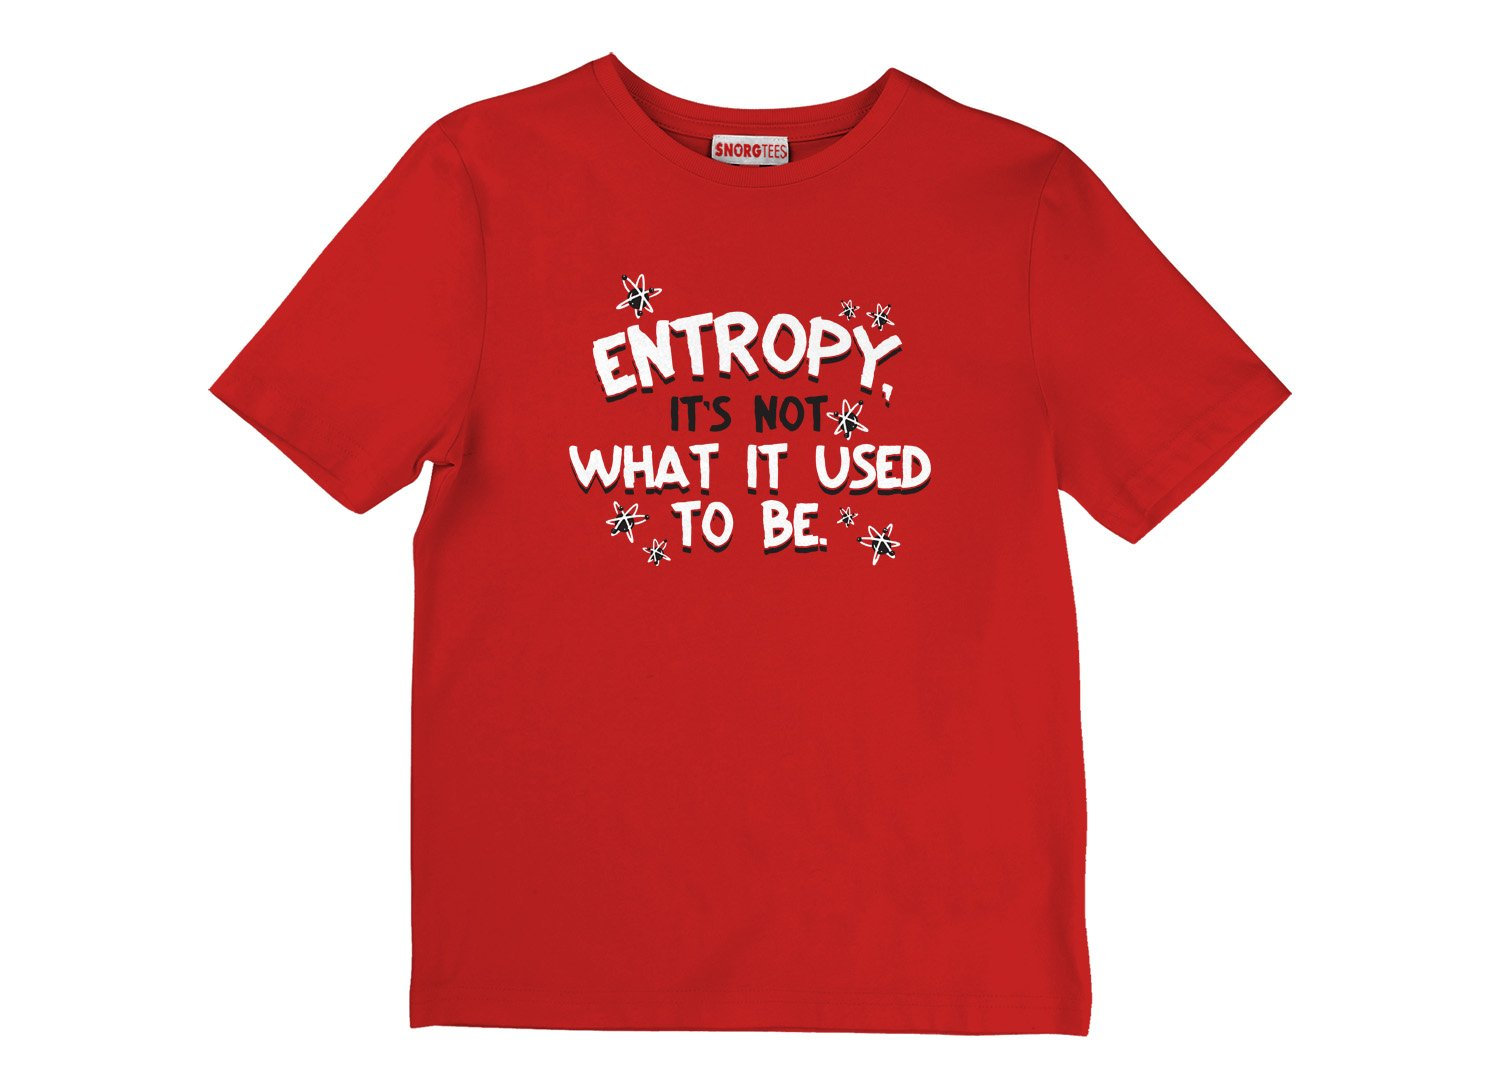 Entropy, It's Not What It Used To Be on Kids T-Shirt